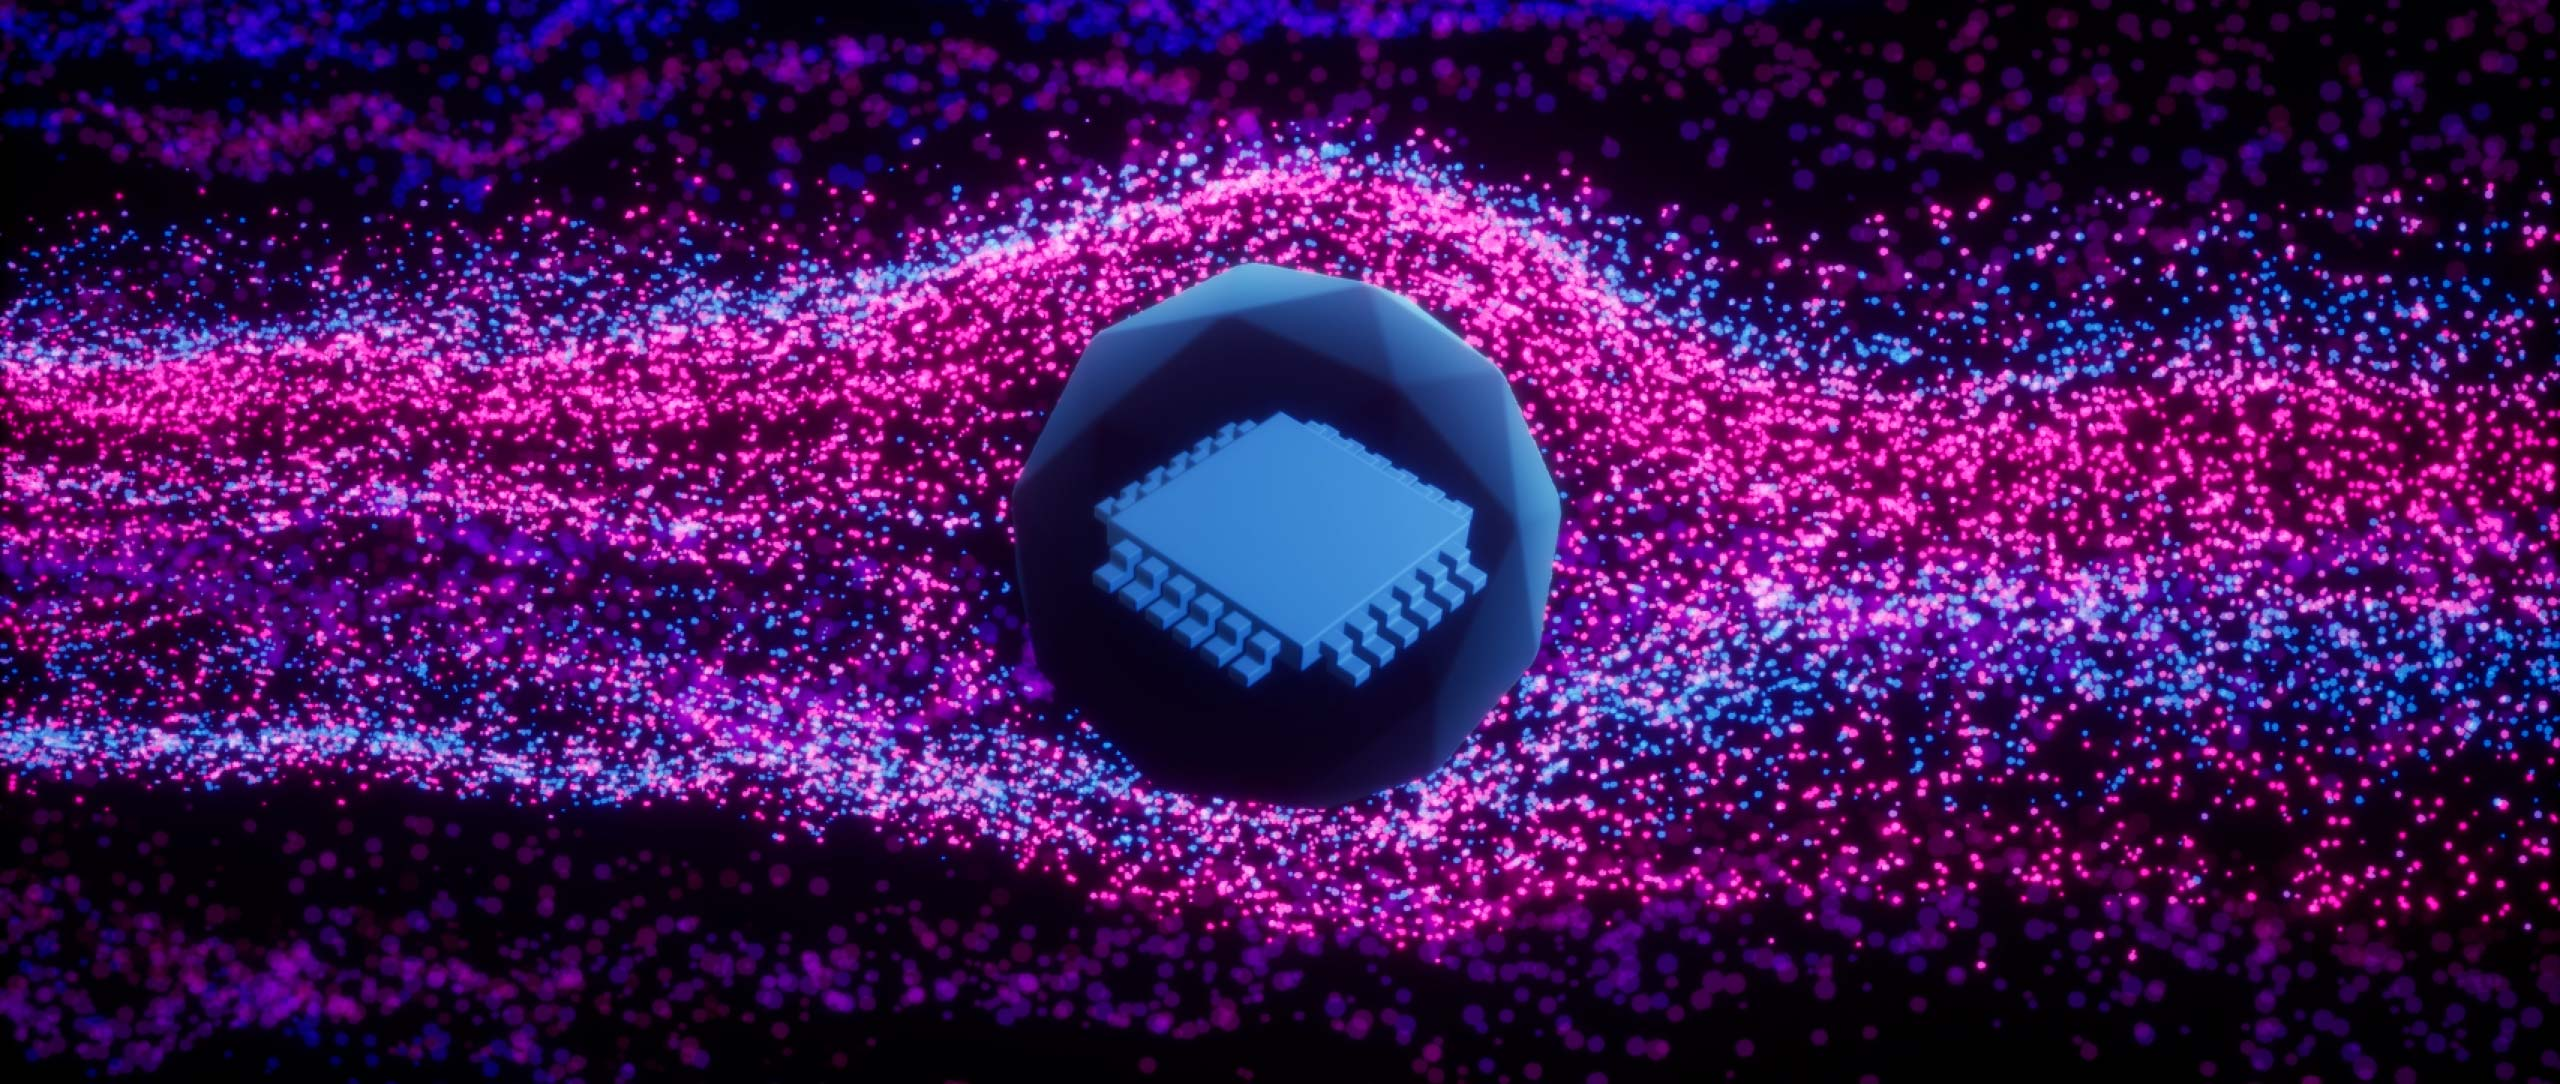 An illustration showing pink and purple particles flowing around a geometric computer chip.